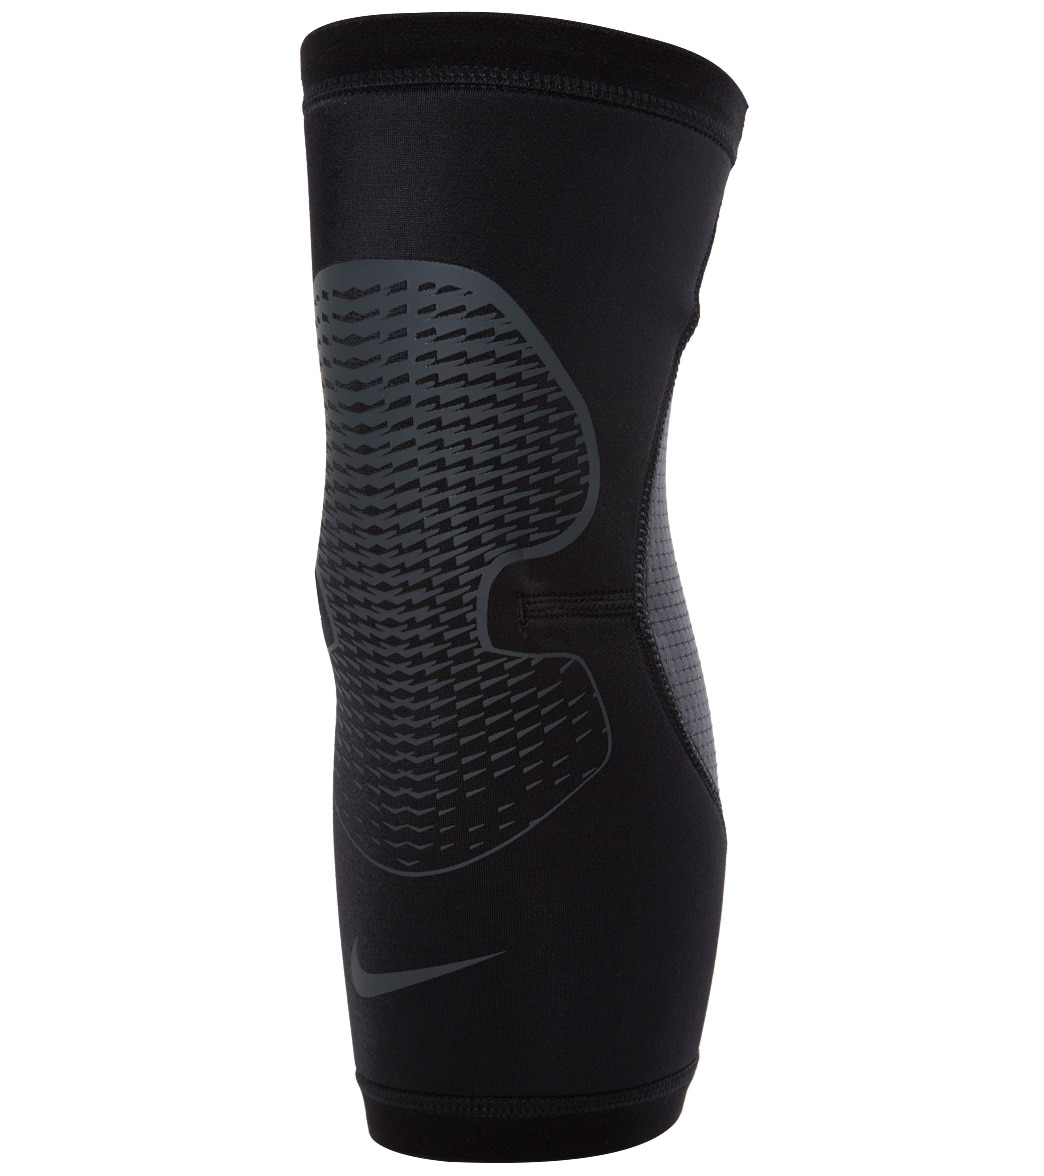 8a85ad56394e7 Nike Pro Hyperstrong Knee Sleeve 3.0 at SwimOutlet.com